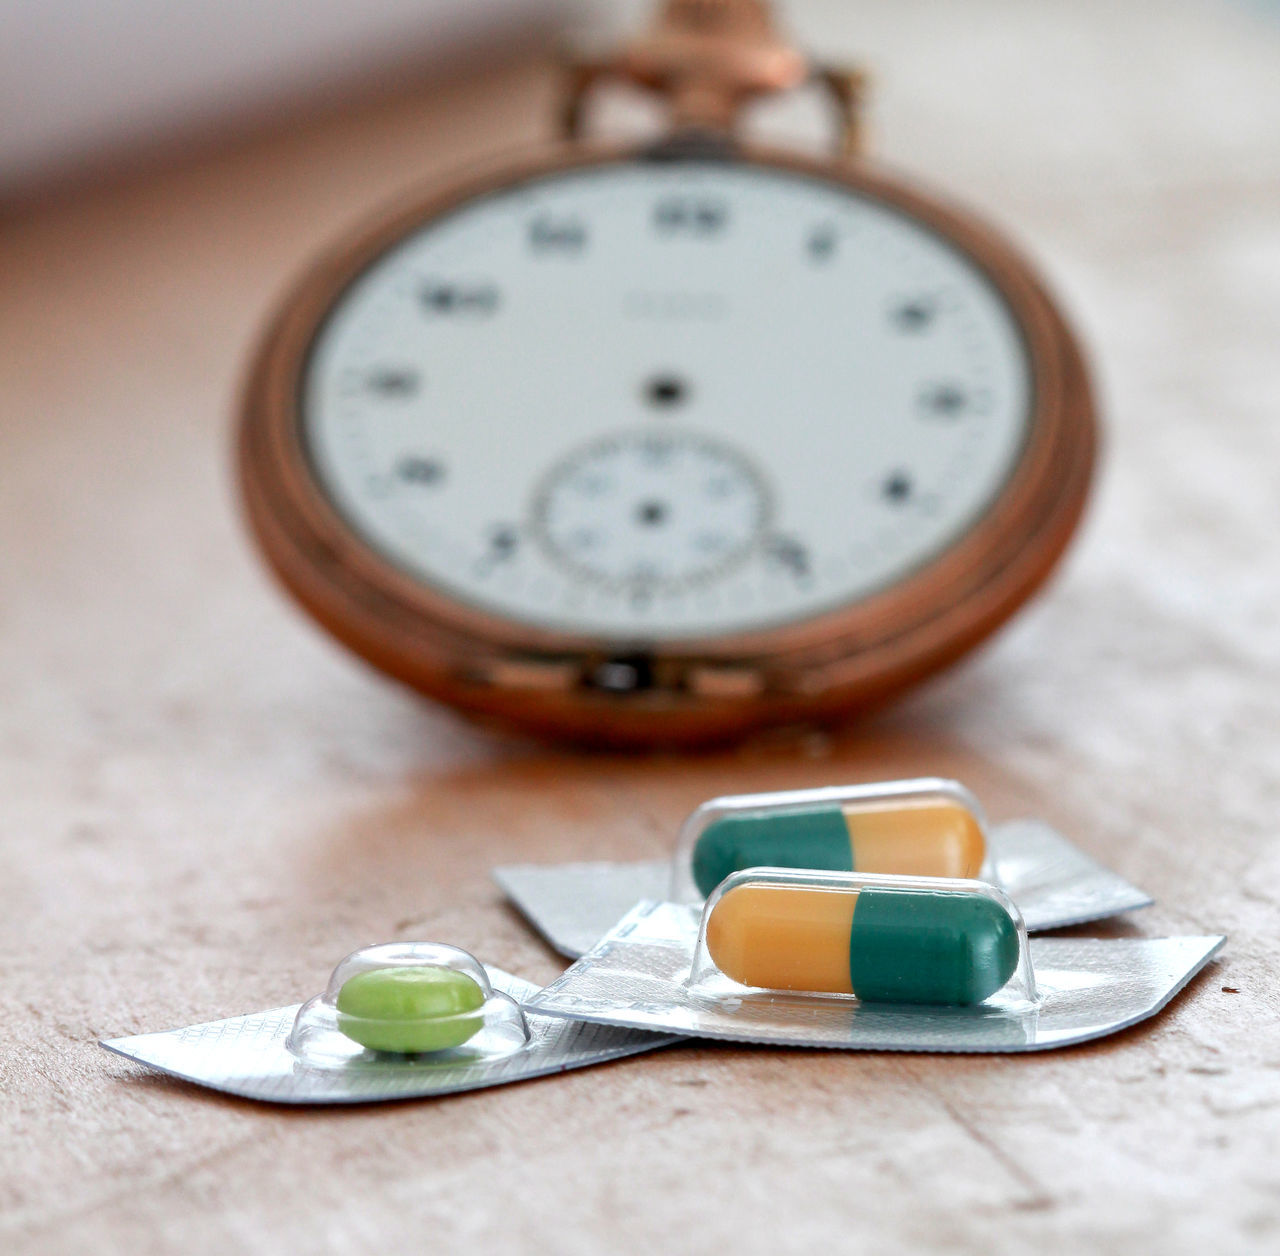 clock, time, indoors, table, close-up, no people, number, selective focus, still life, alarm clock, healthcare and medicine, focus on foreground, instrument of time, wood - material, day, accuracy, instrument of measurement, shape, pill, circle, minute hand